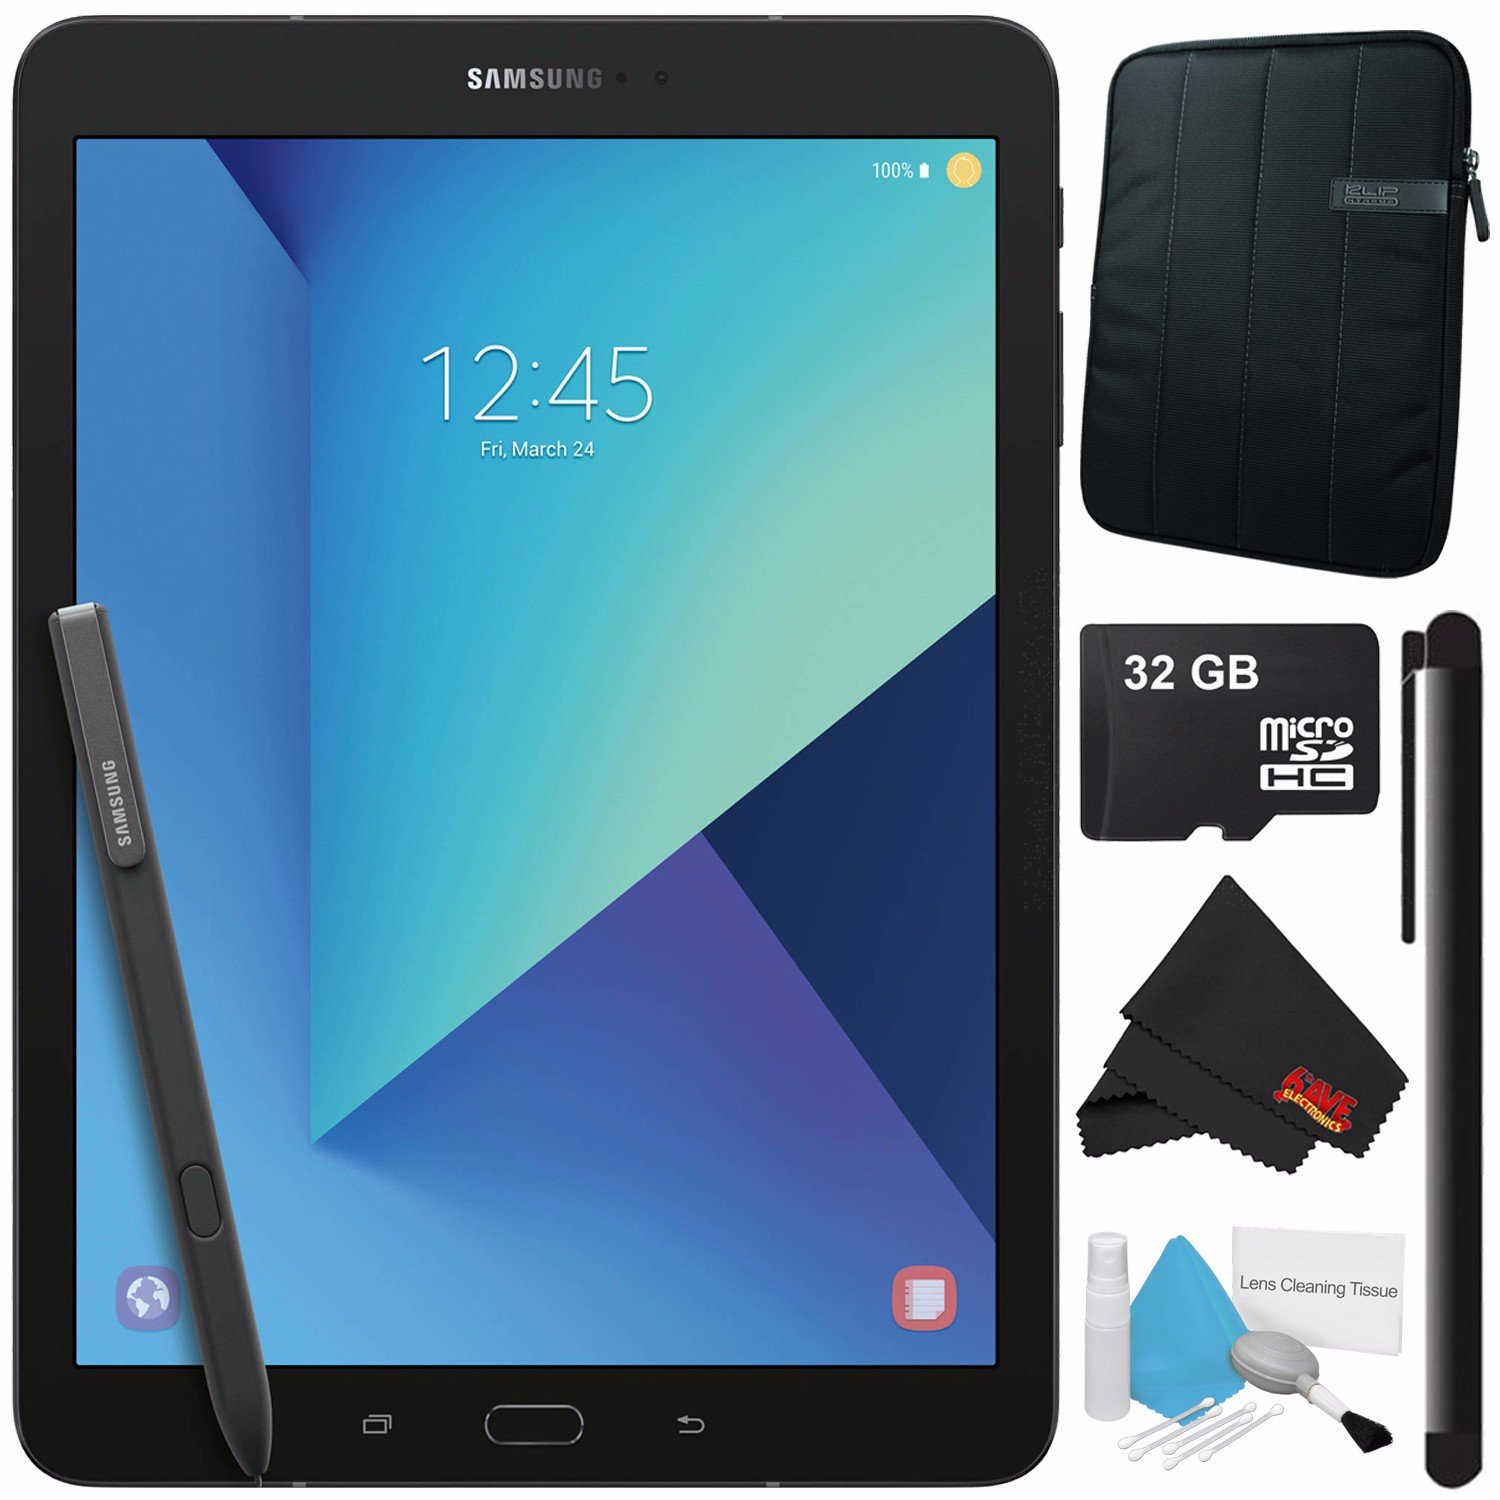 Samsung 32GB Galaxy Tab S3 9.7'' Wi-Fi Tablet (Black) SM-T820NZKAXAR + Universal Stylus for Tablets + Tablet Neoprene Sleeve 10.1'' Case (Black) + 32GB Class 10 Micro SD Memory Card Bundle